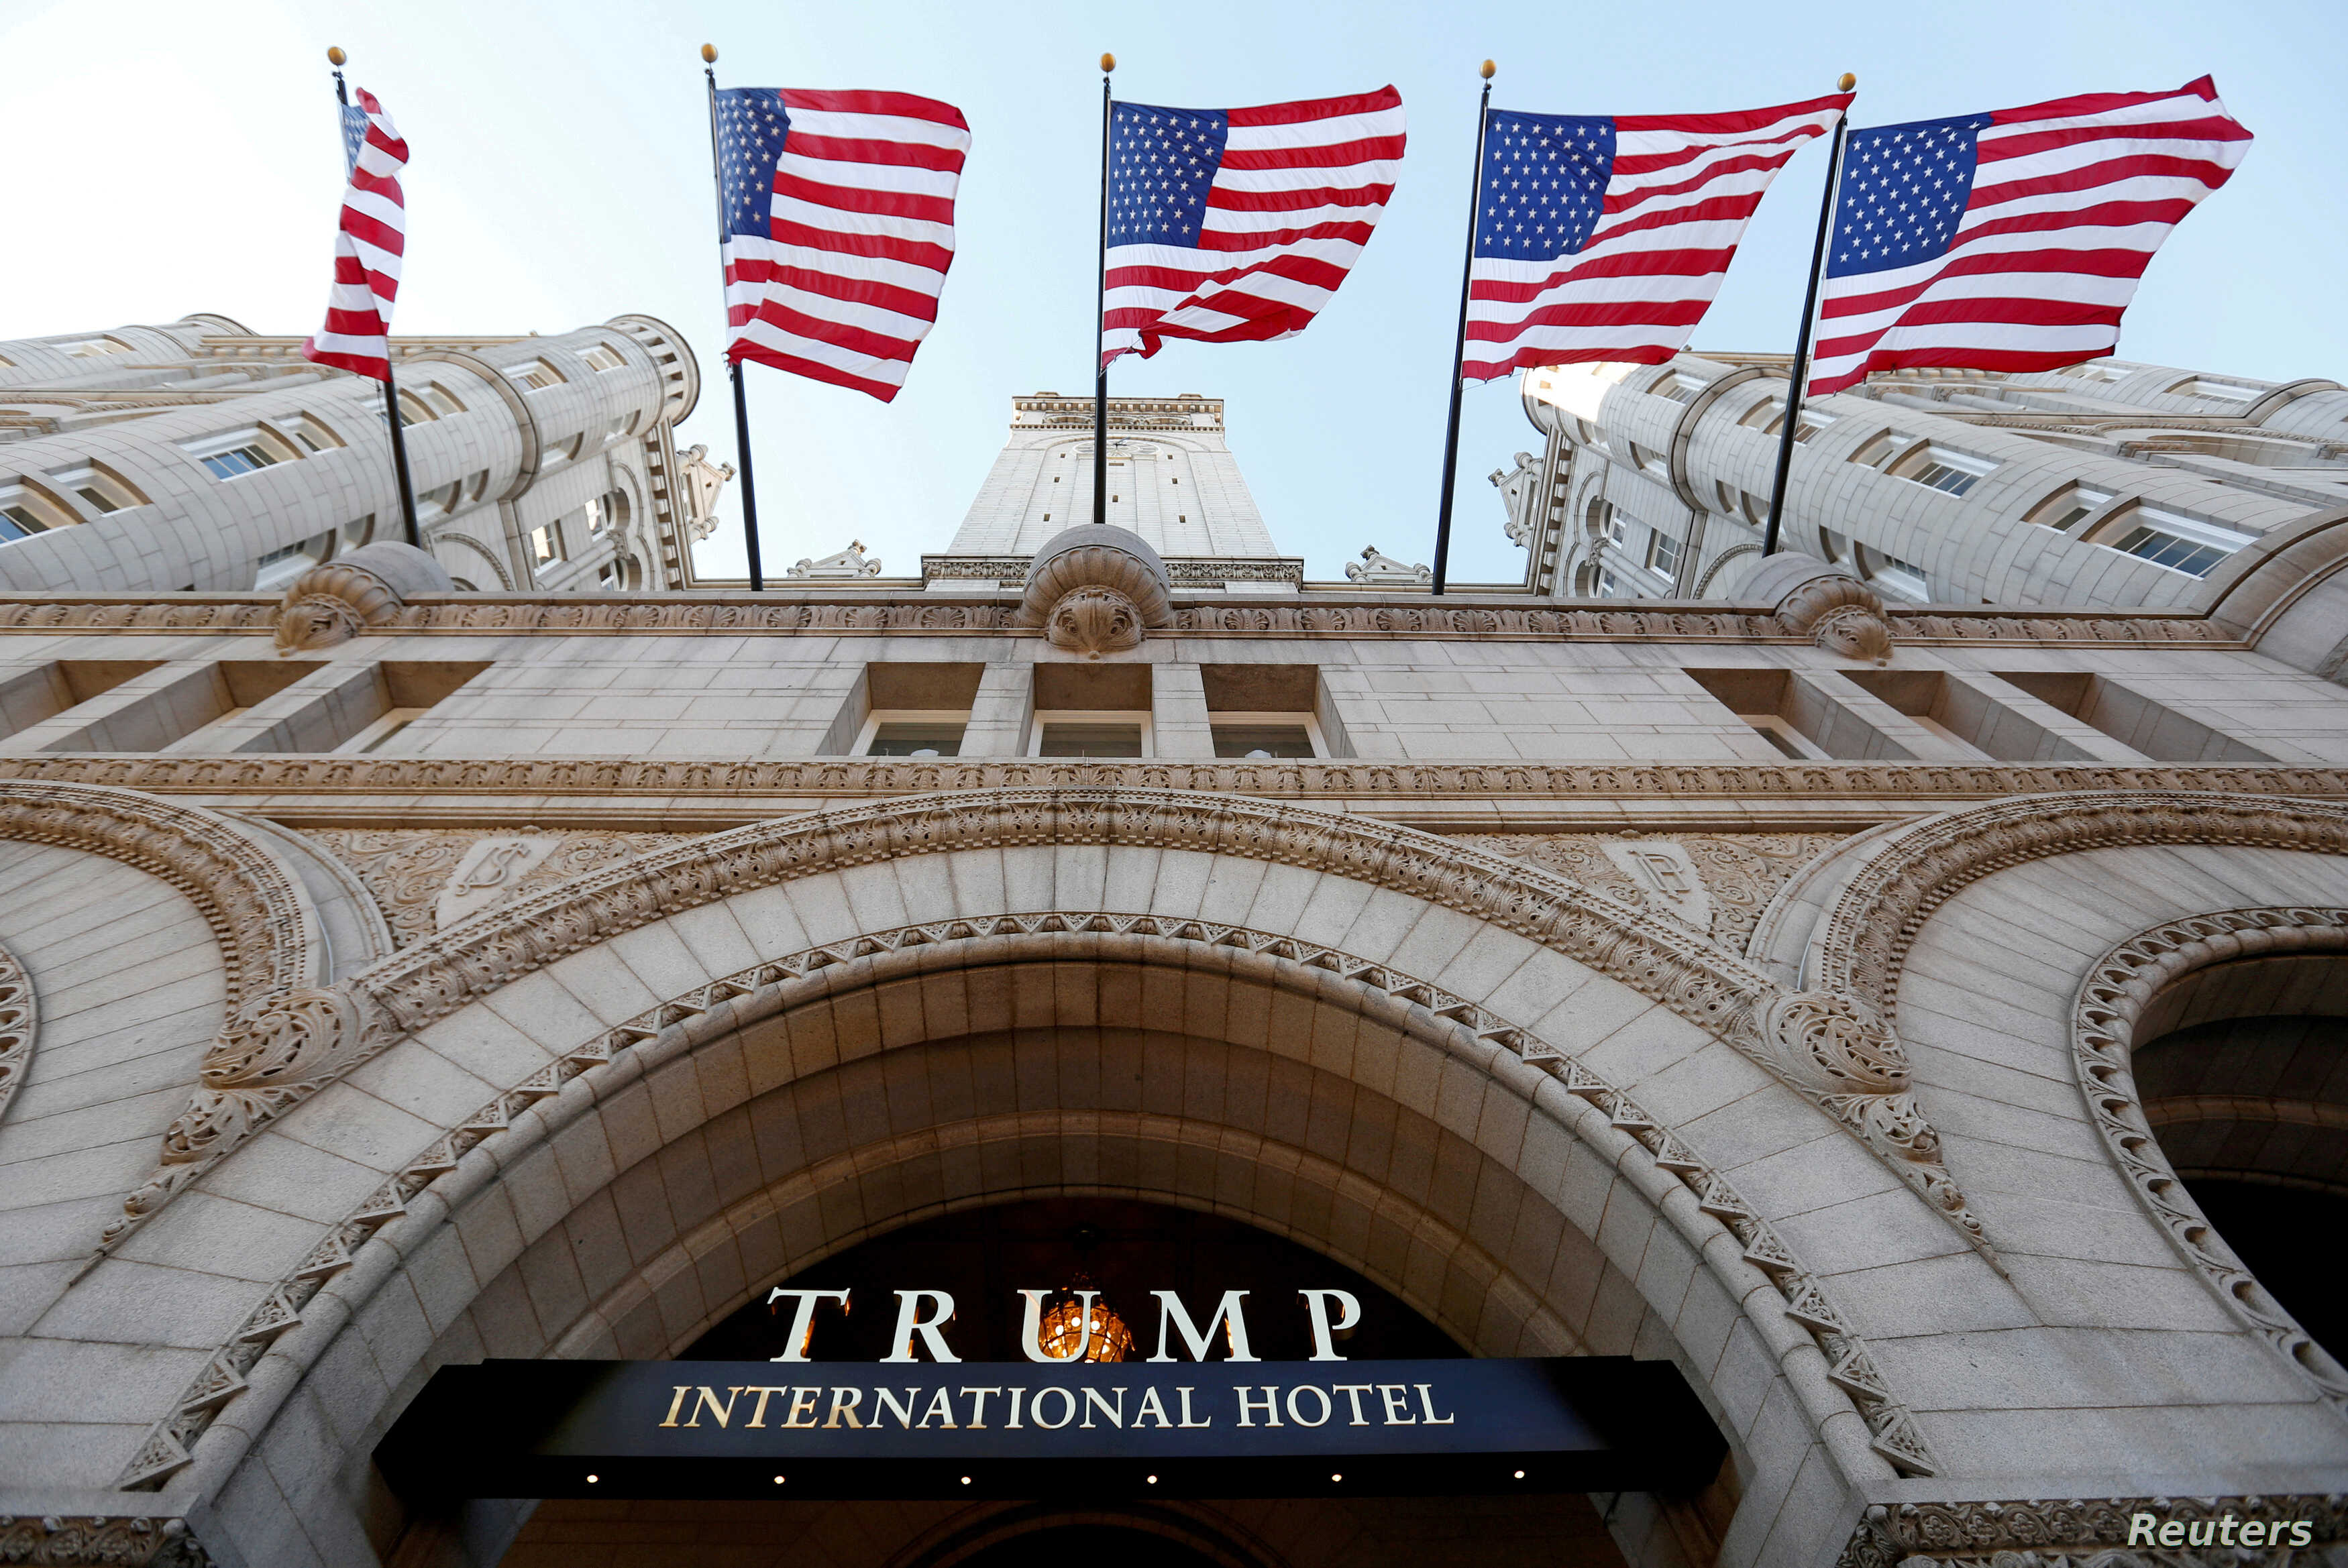 FILE - Flags fly above the entrance to the new Trump International Hotel on its opening day in Washington, DC, U.S. on Sept. 12, 2016.